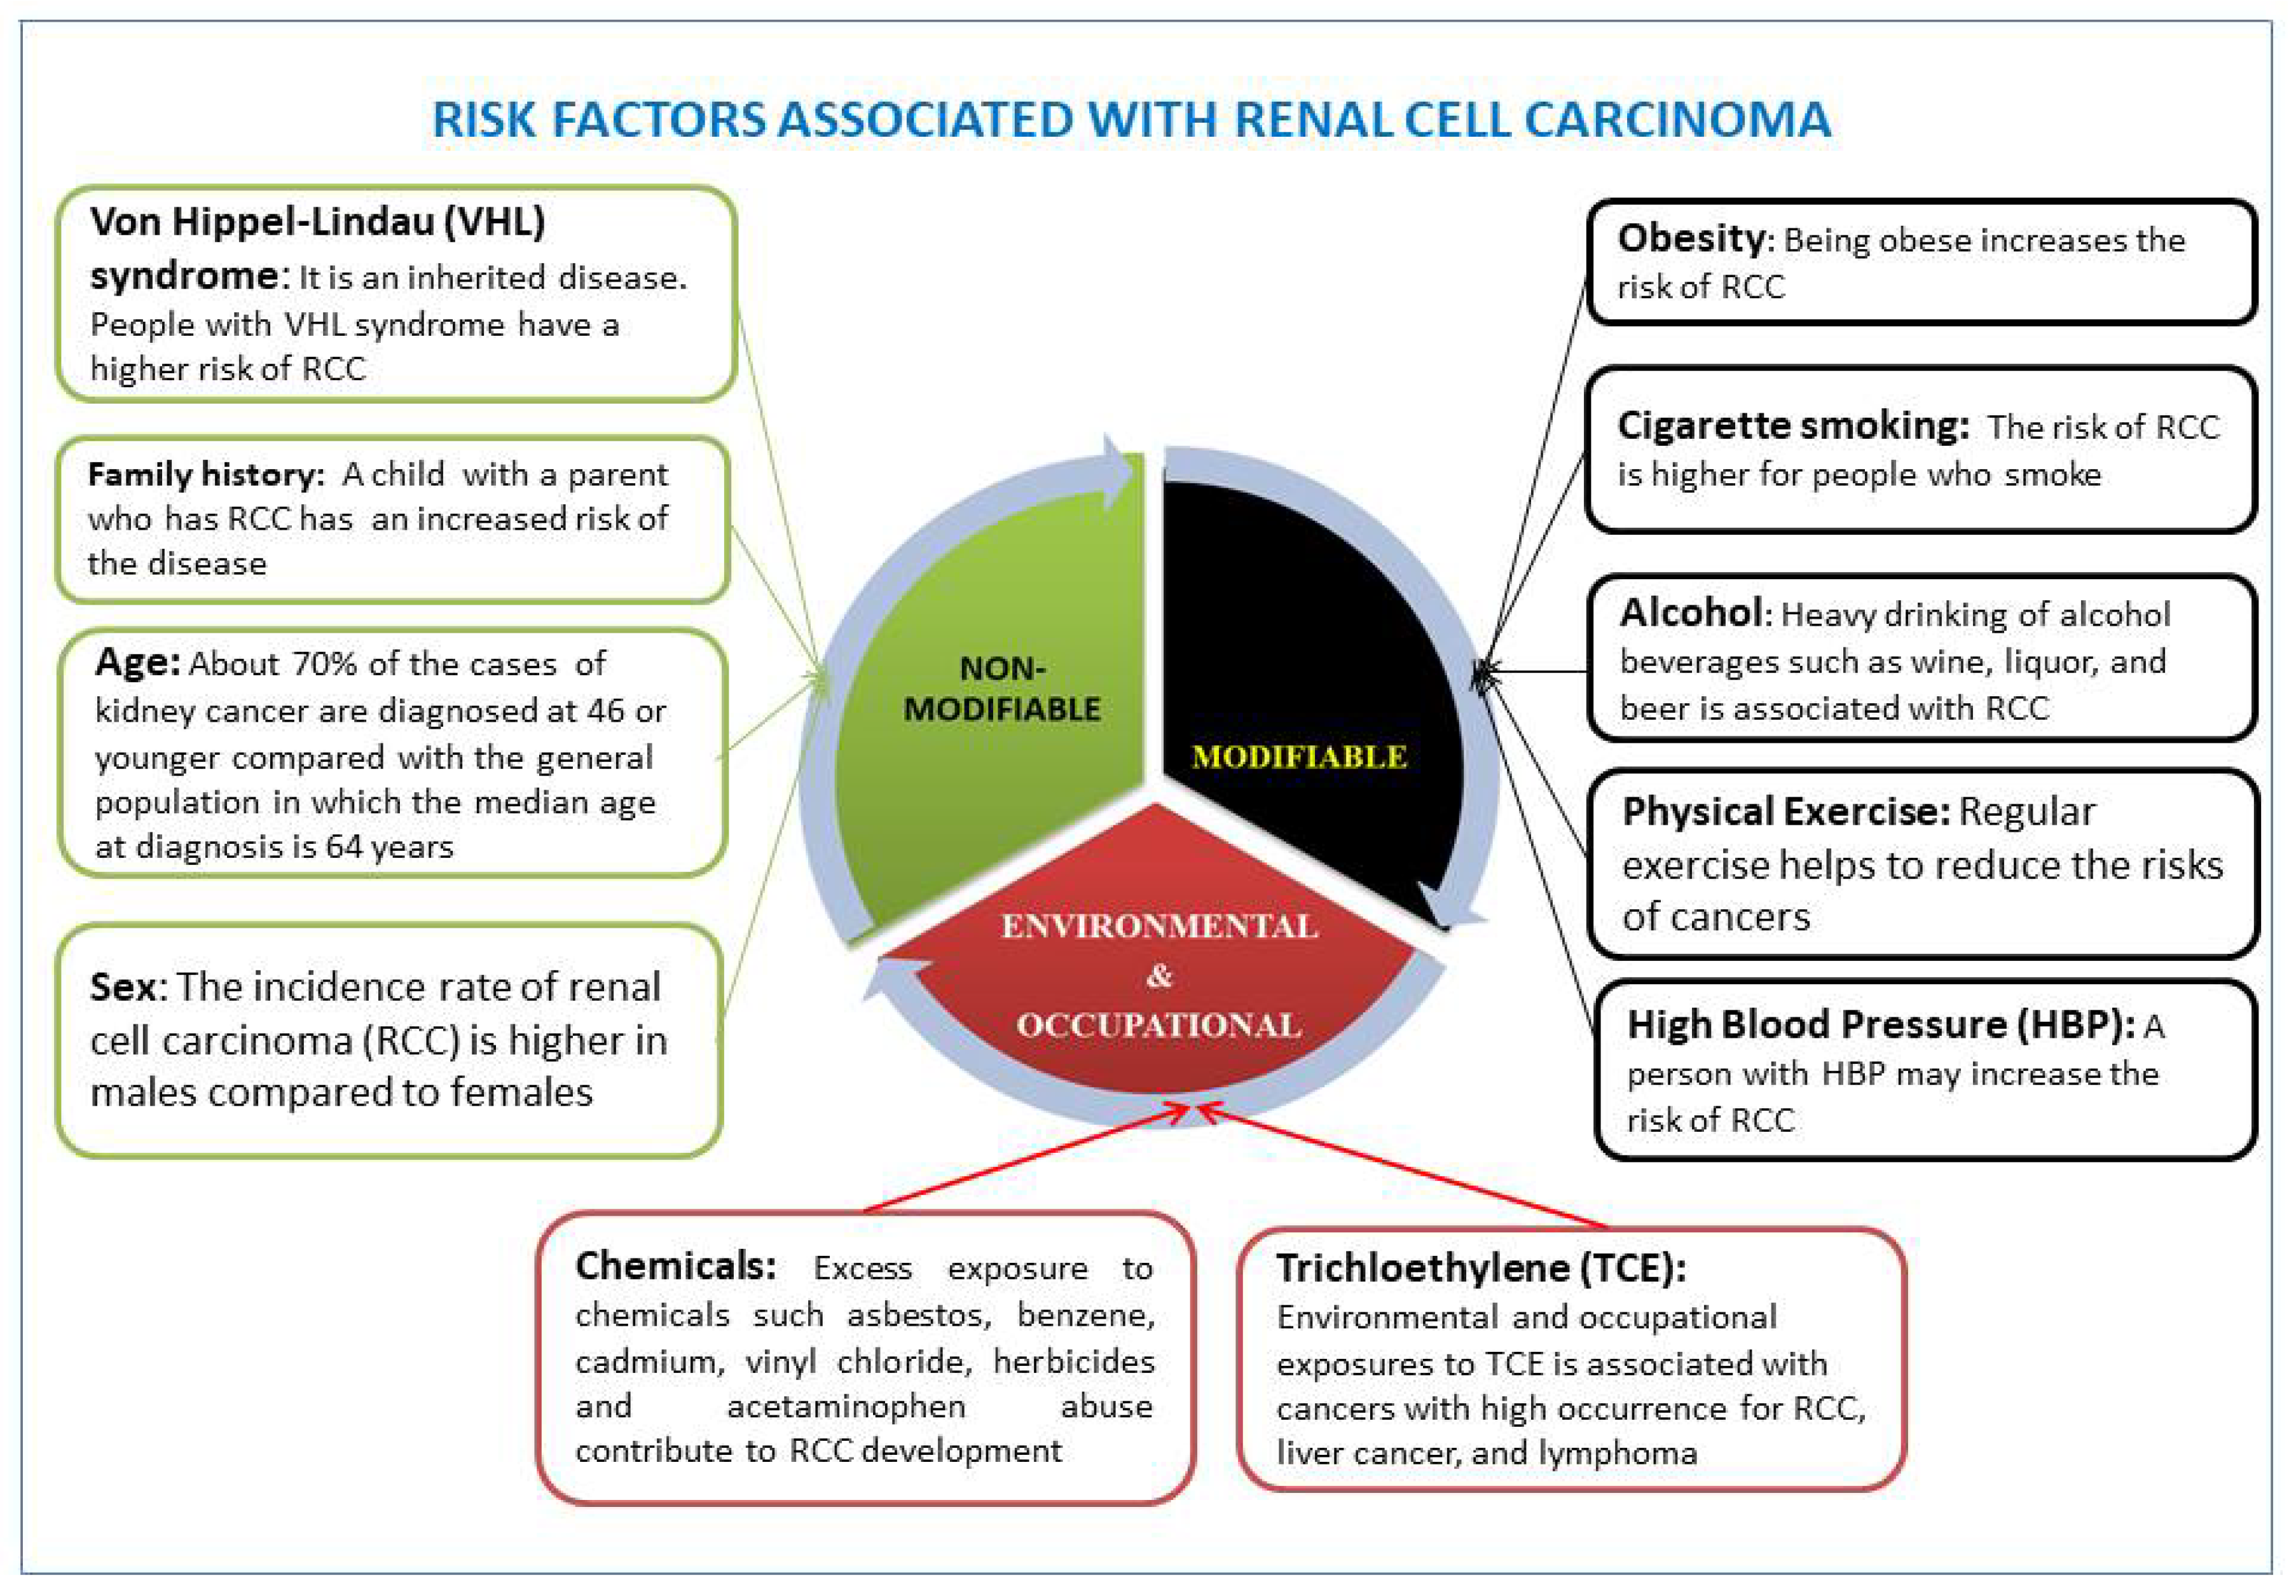 Ijerph Free Full Text Racial Disparities And Preventive Measures To Renal Cell Carcinoma Html